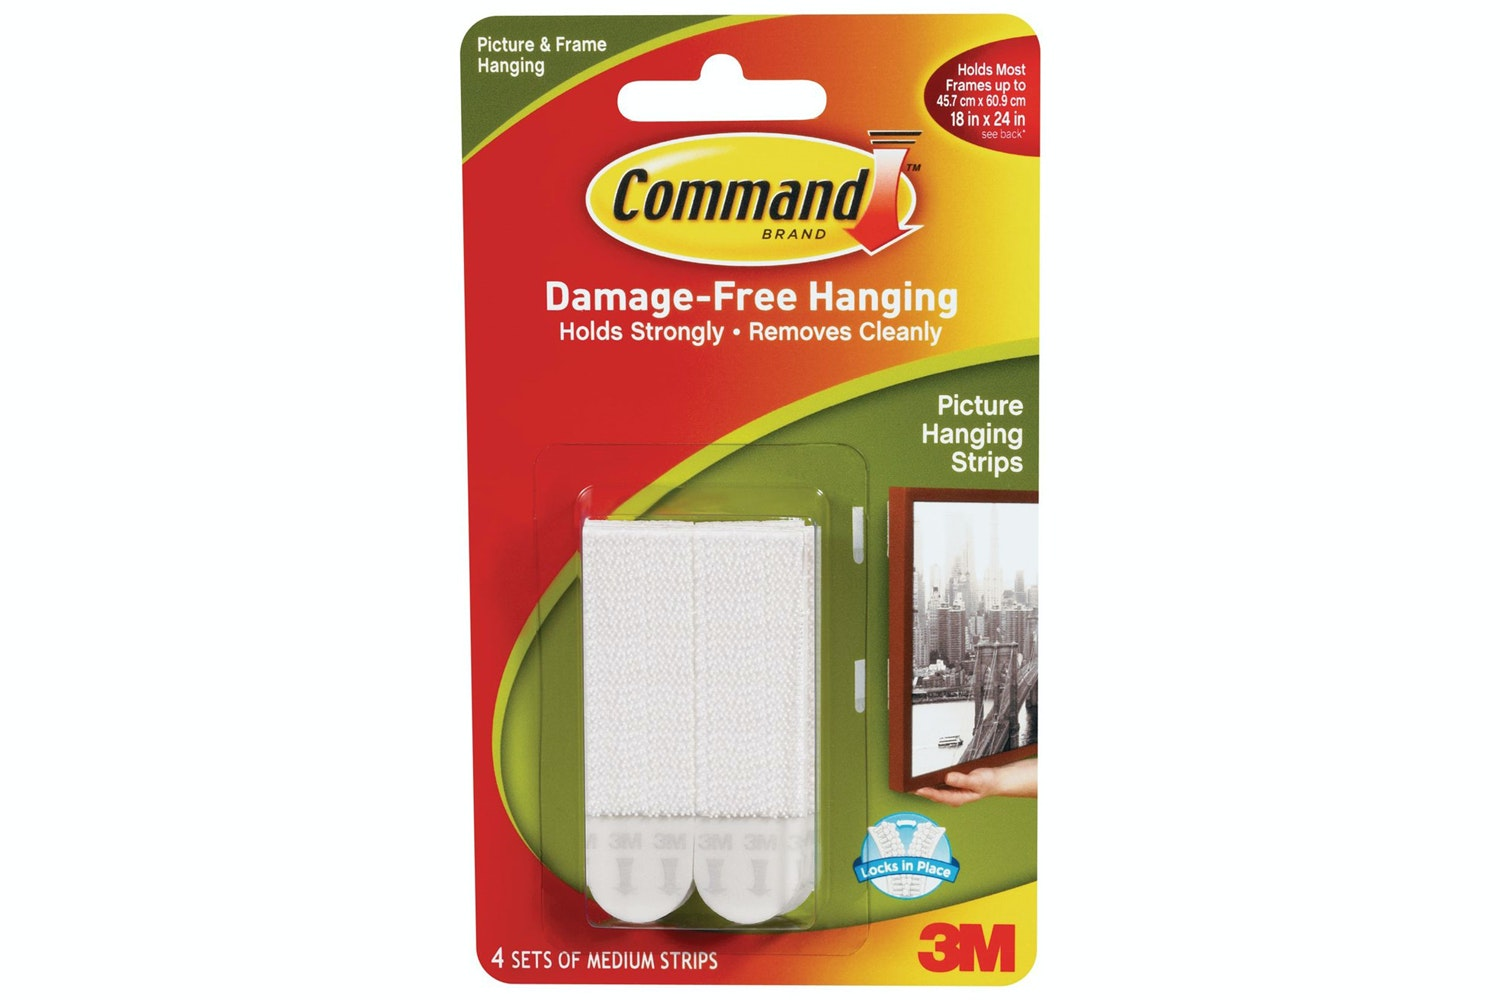 3M Command 4 Sets Medium Picture Hanging Strips | White